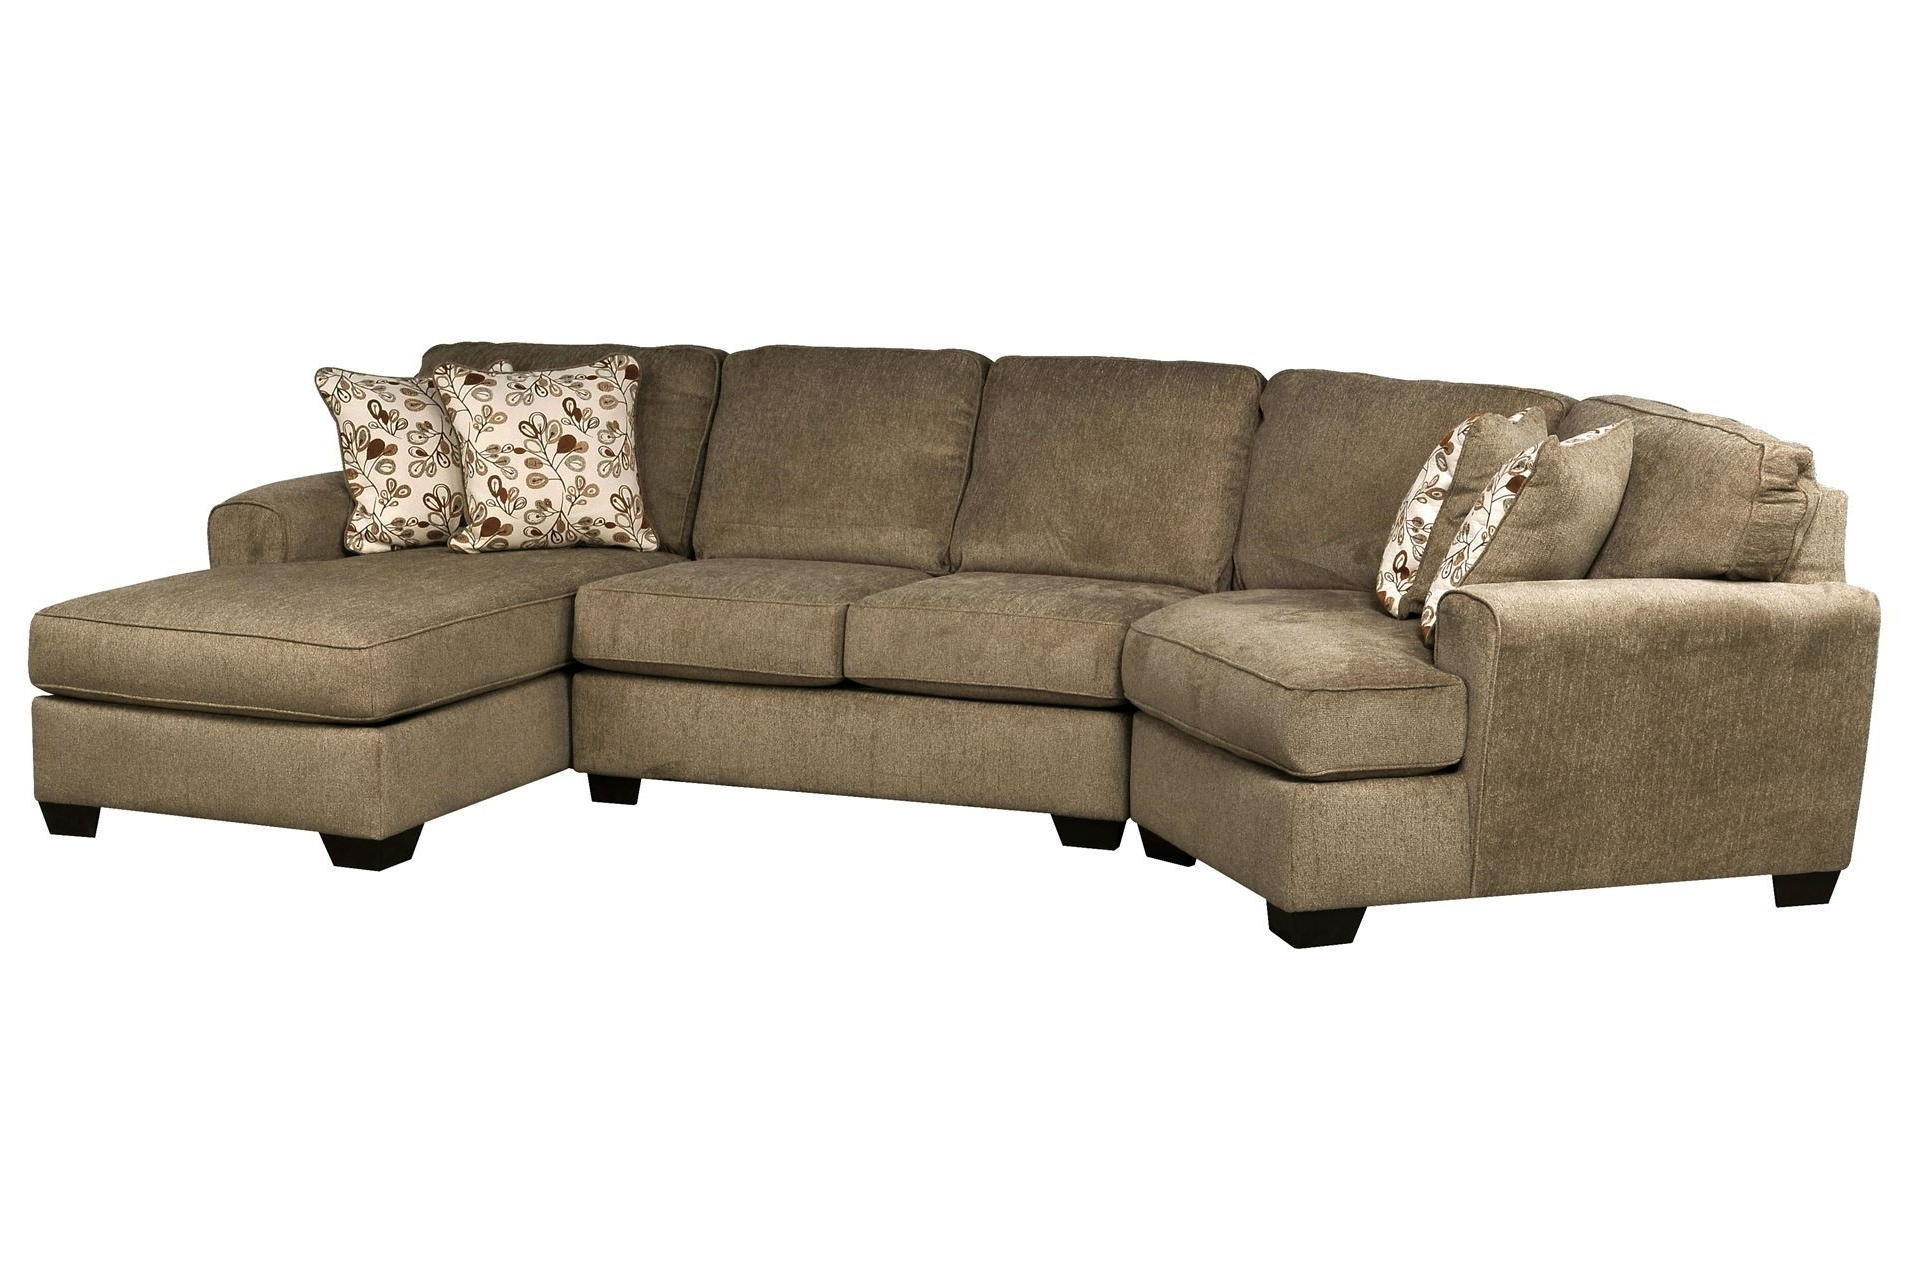 Sectional Sofas With Cuddler Chaise Inside Most Recent Don't Love The Color, But The Shape Is Great! (View 9 of 15)